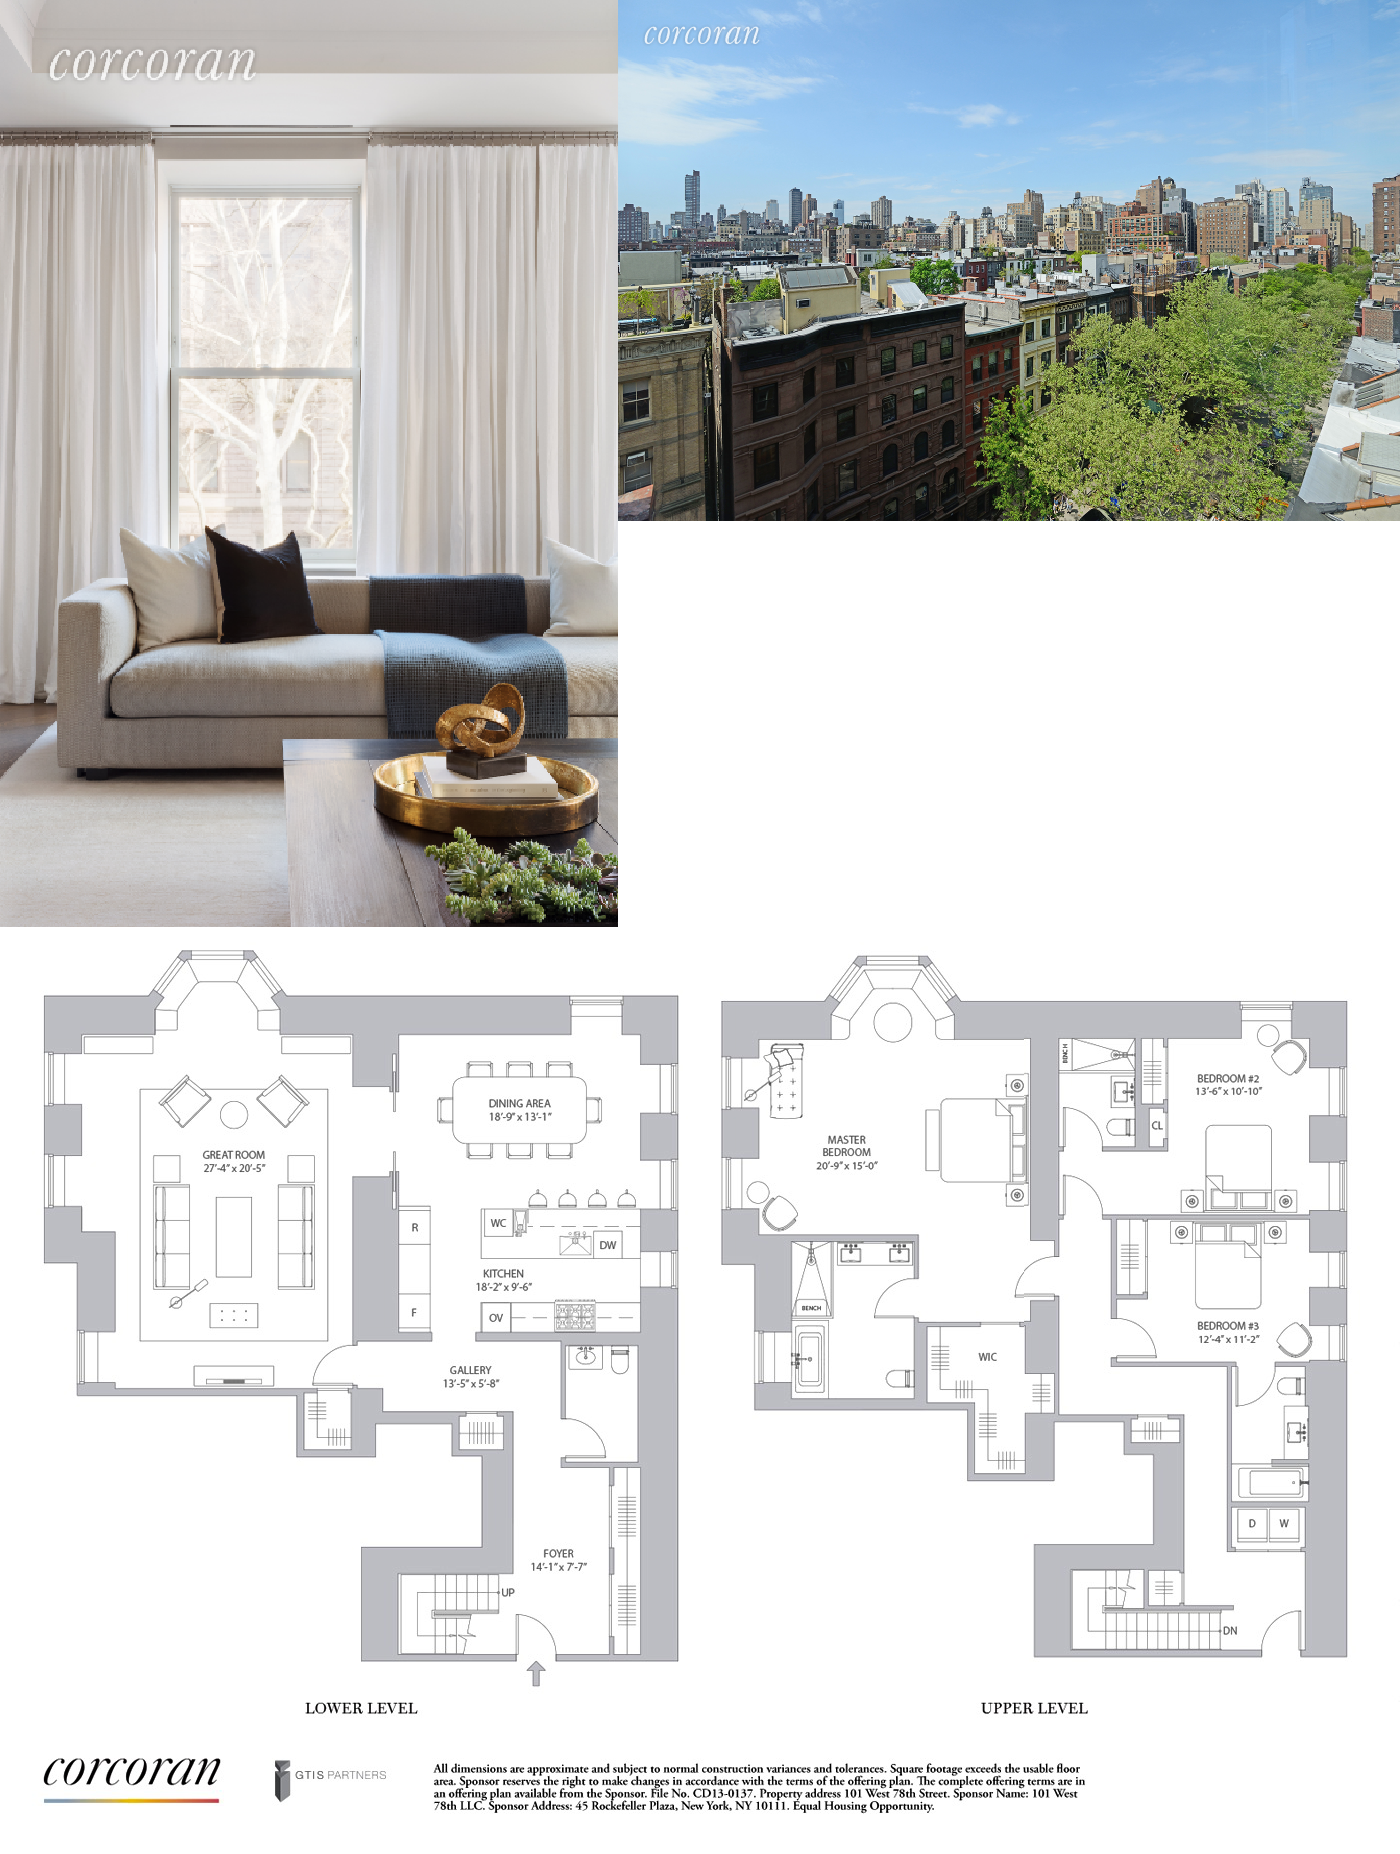 Corcoran 101 West 78th Street Apt 6c Upper West Side Real Estate Manhattan For Sale Homes Upper Luxury Floor Plans House Layout Plans New York Townhouse